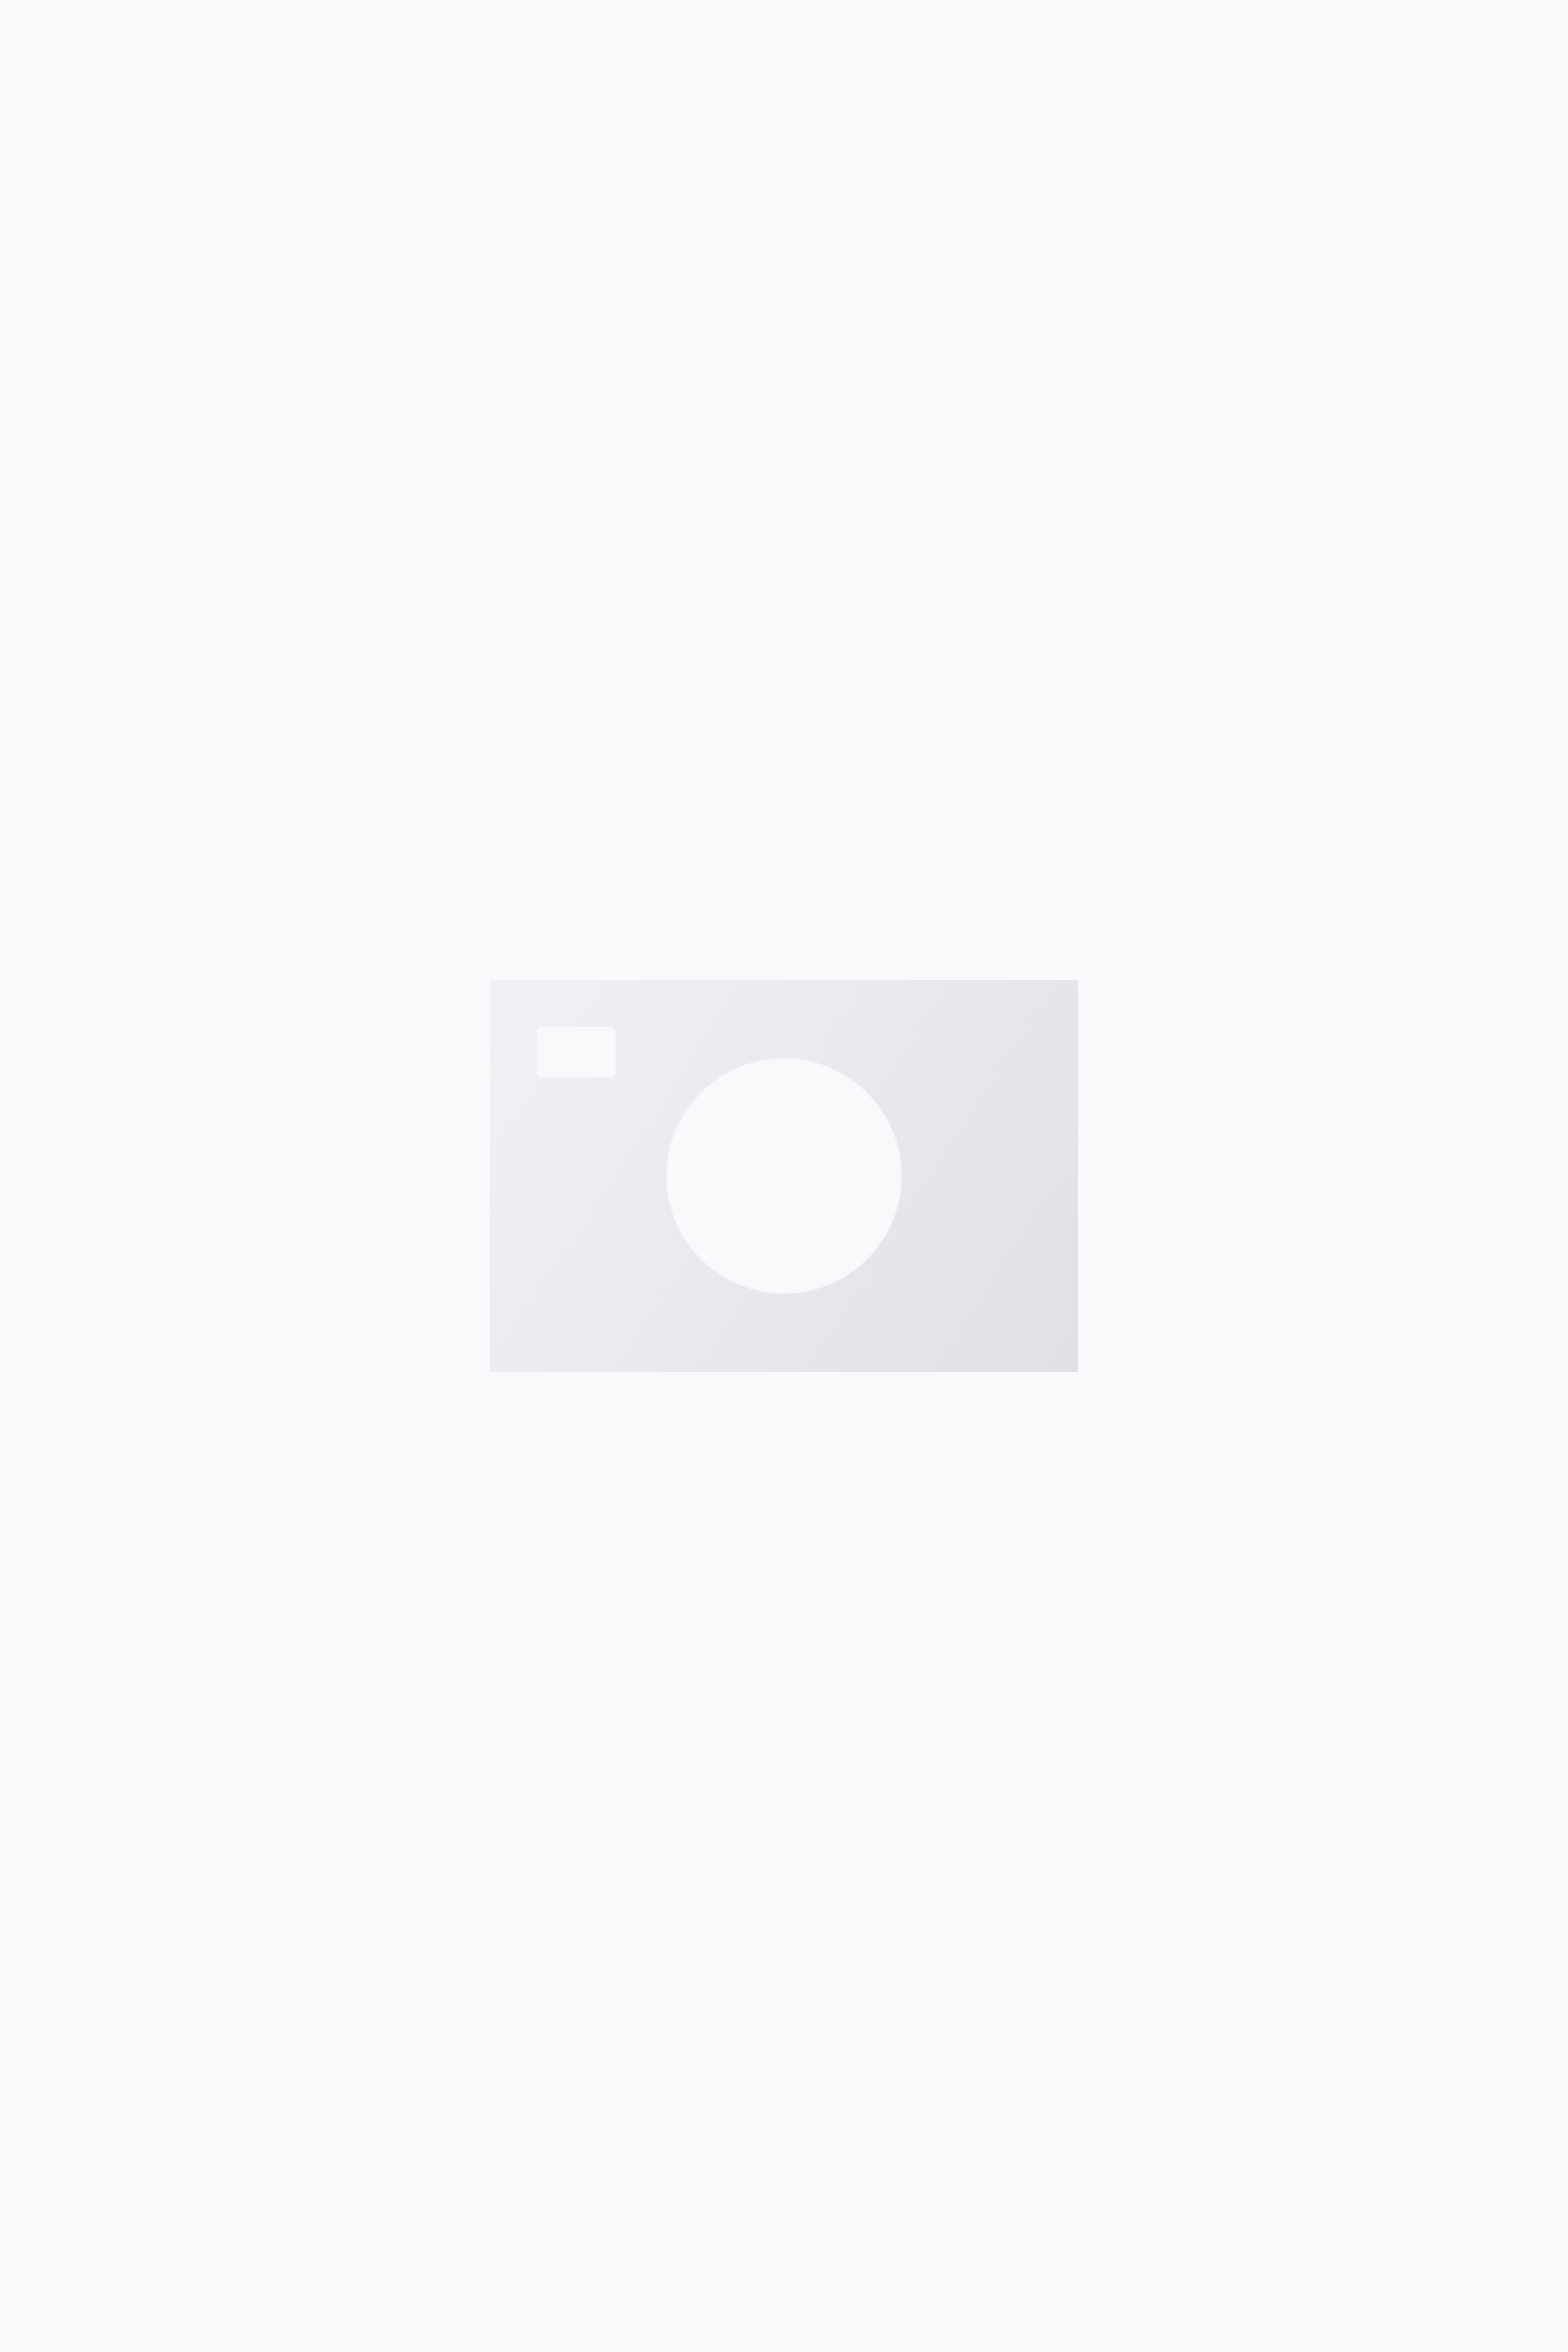 COS ORGANIC COTTON TOWELLING SHORTS,White